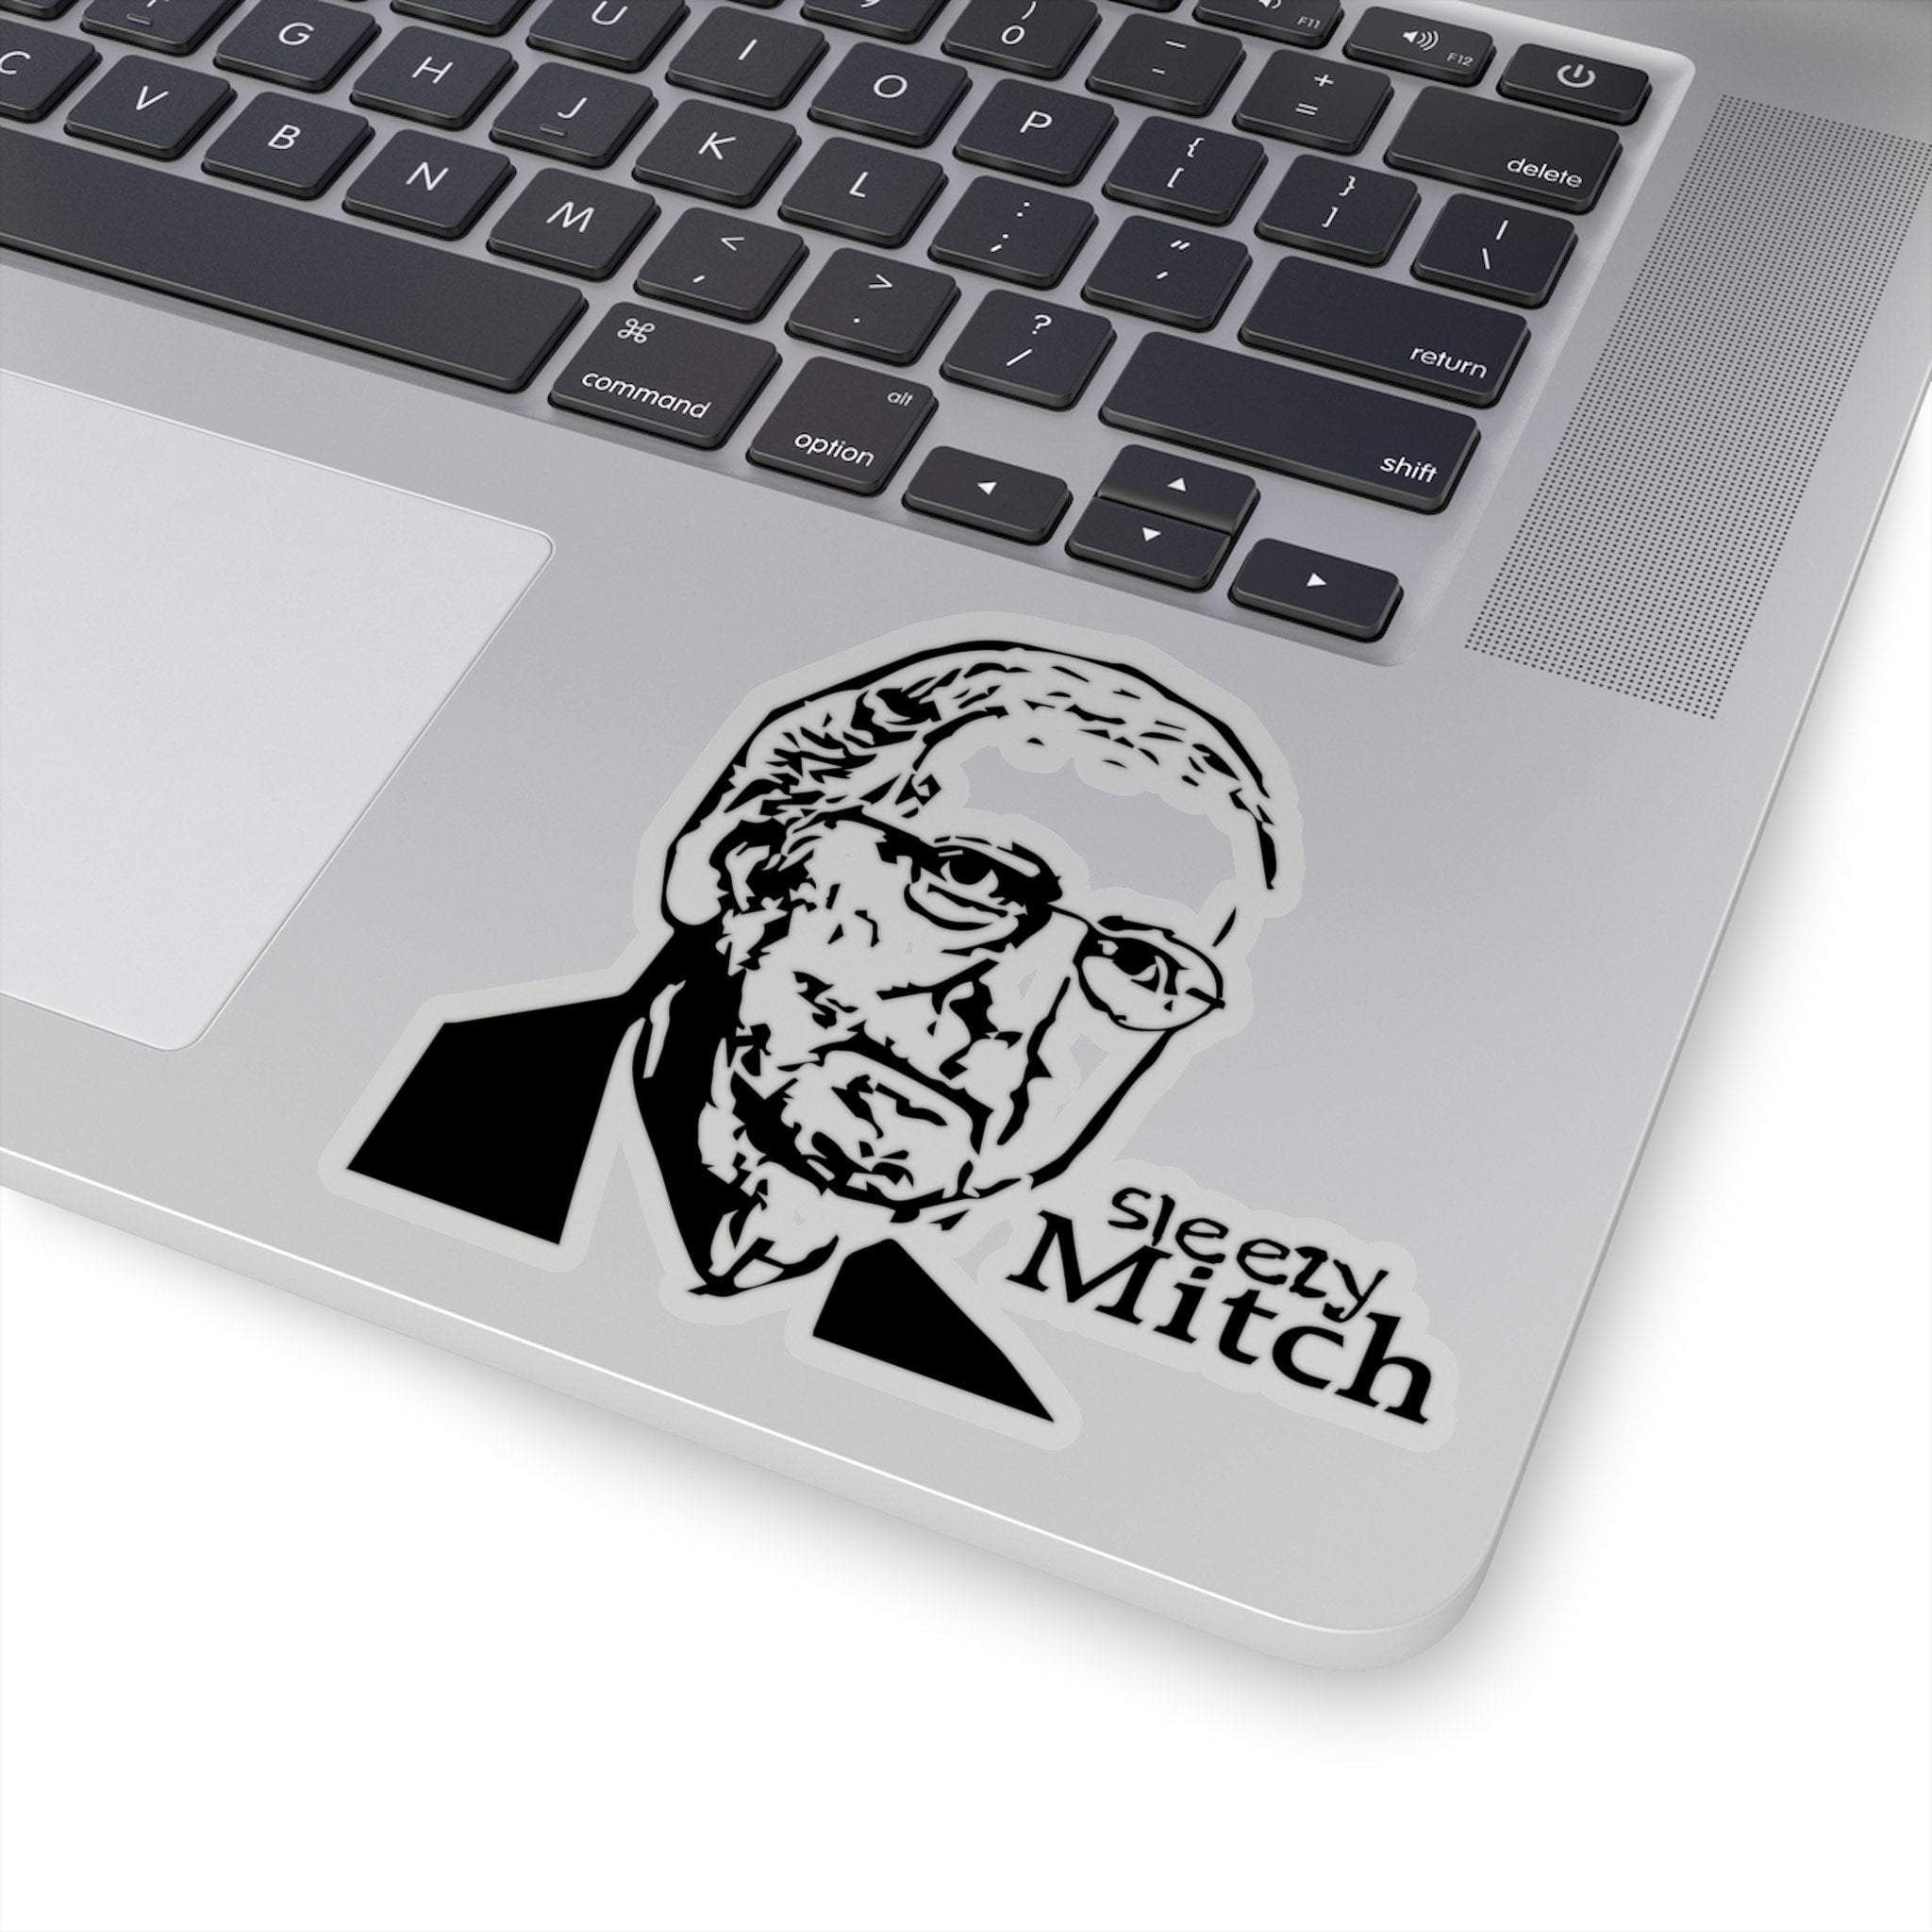 Sleezy Moscow Mitch McConnell - Republican Funny Die-Cut Stickers | Stickers for Laptop